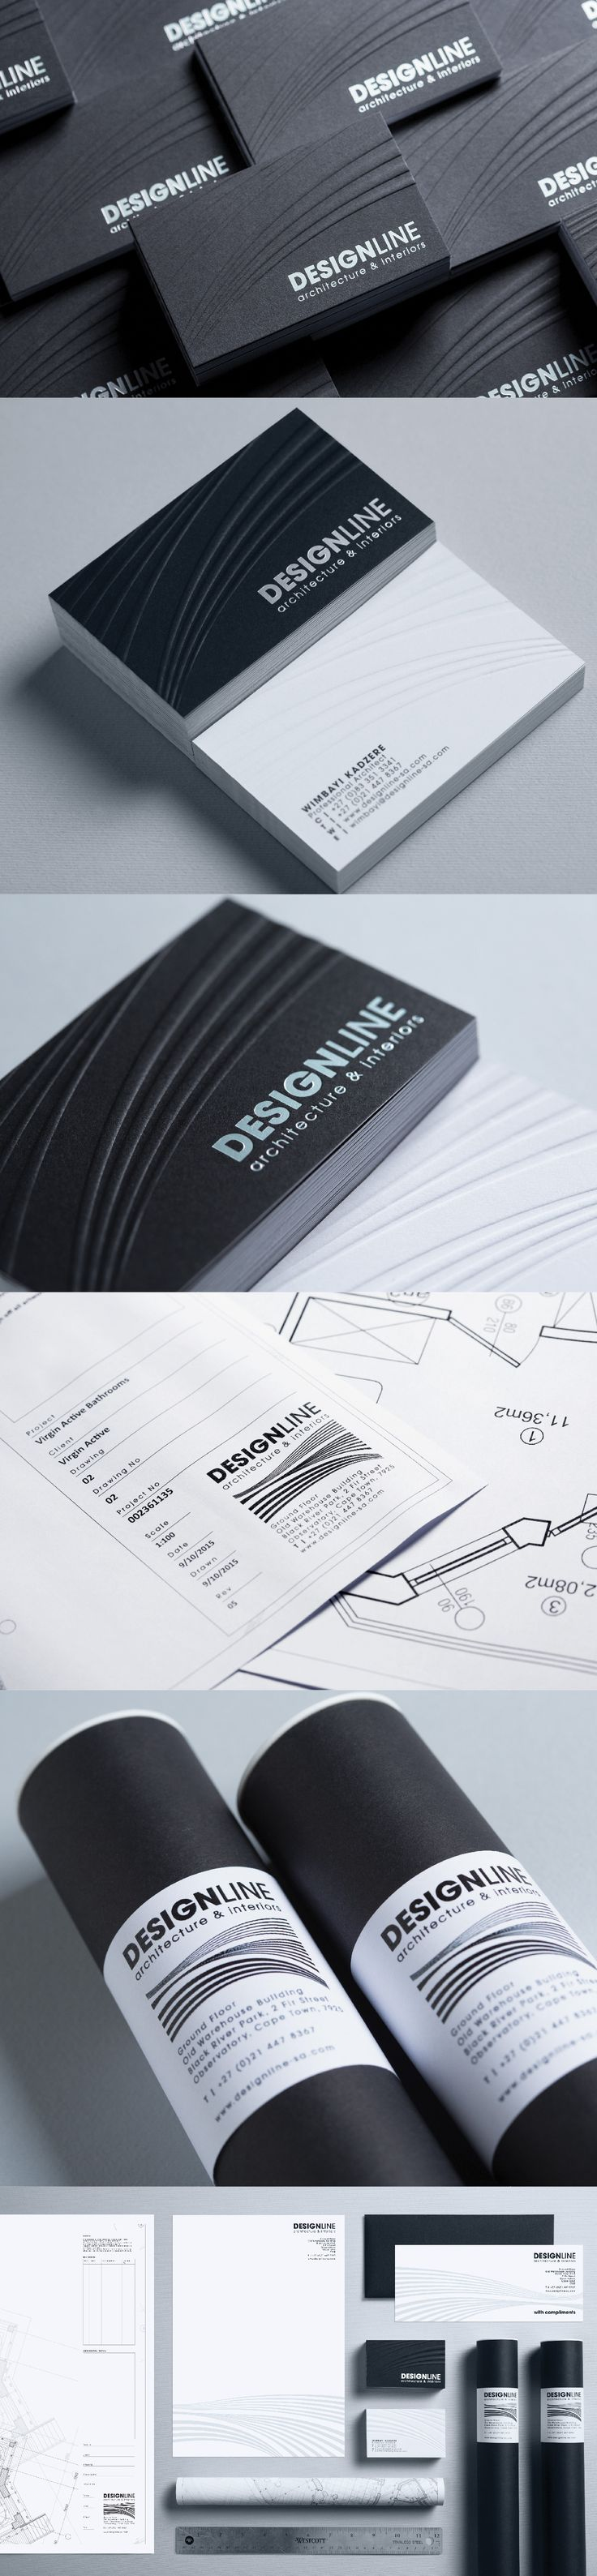 Design line Architecture & Interiors Corporate Stationary, Business Cards, Letterheads, foiling and embossing.